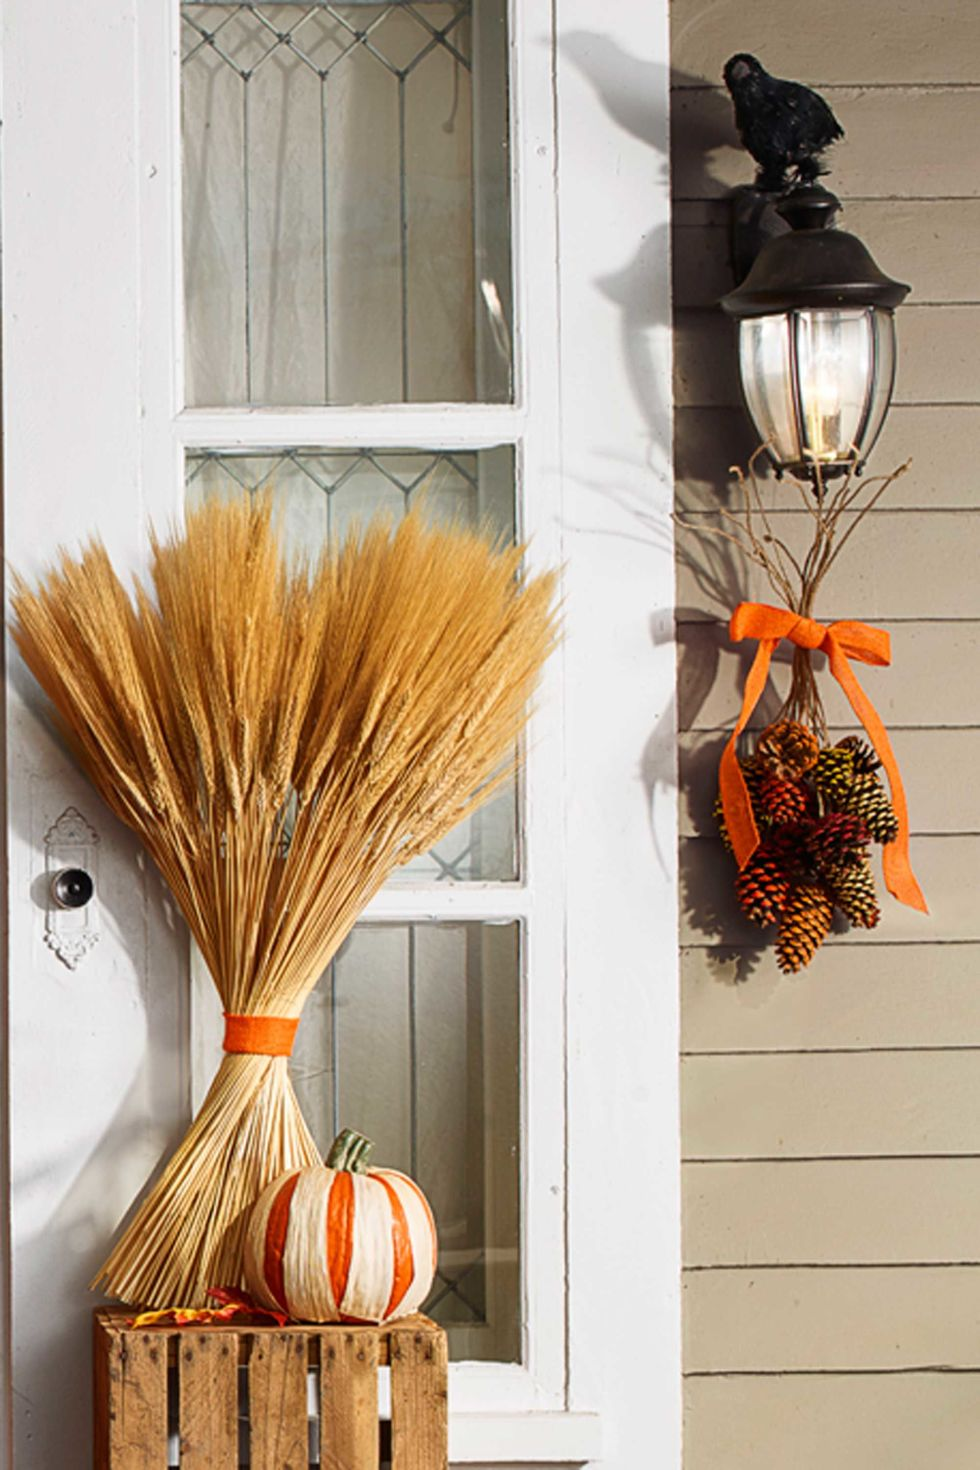 40 easy diy halloween decoration ideas homemade halloween decor projects - Craft Halloween Decorations